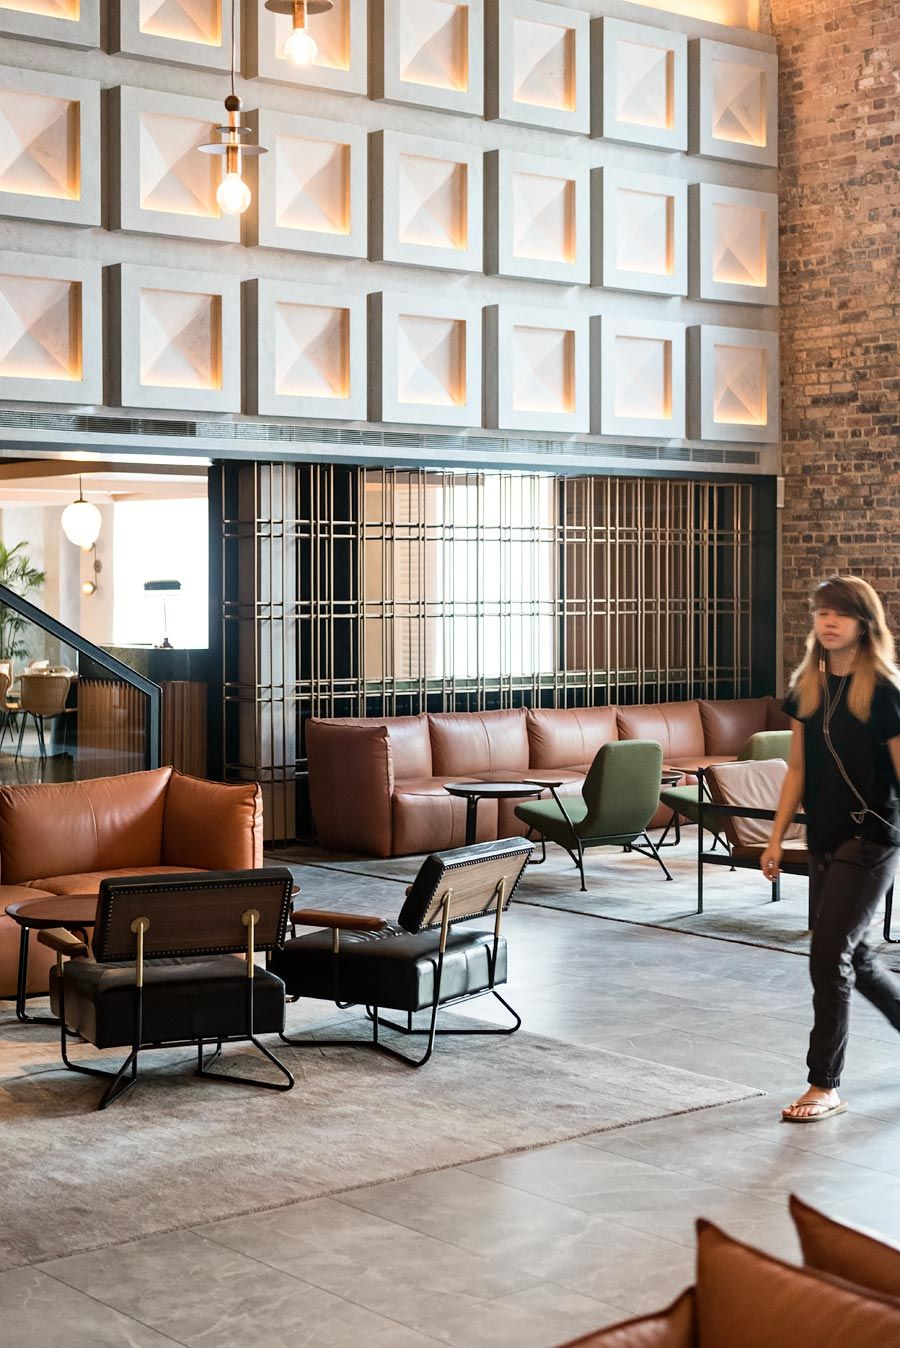 The Warehouse Hotel Review Industrial Chic In Singapore Urban Pixxels Hotel Lobby Design Hotel Interiors Hotel Interior Design